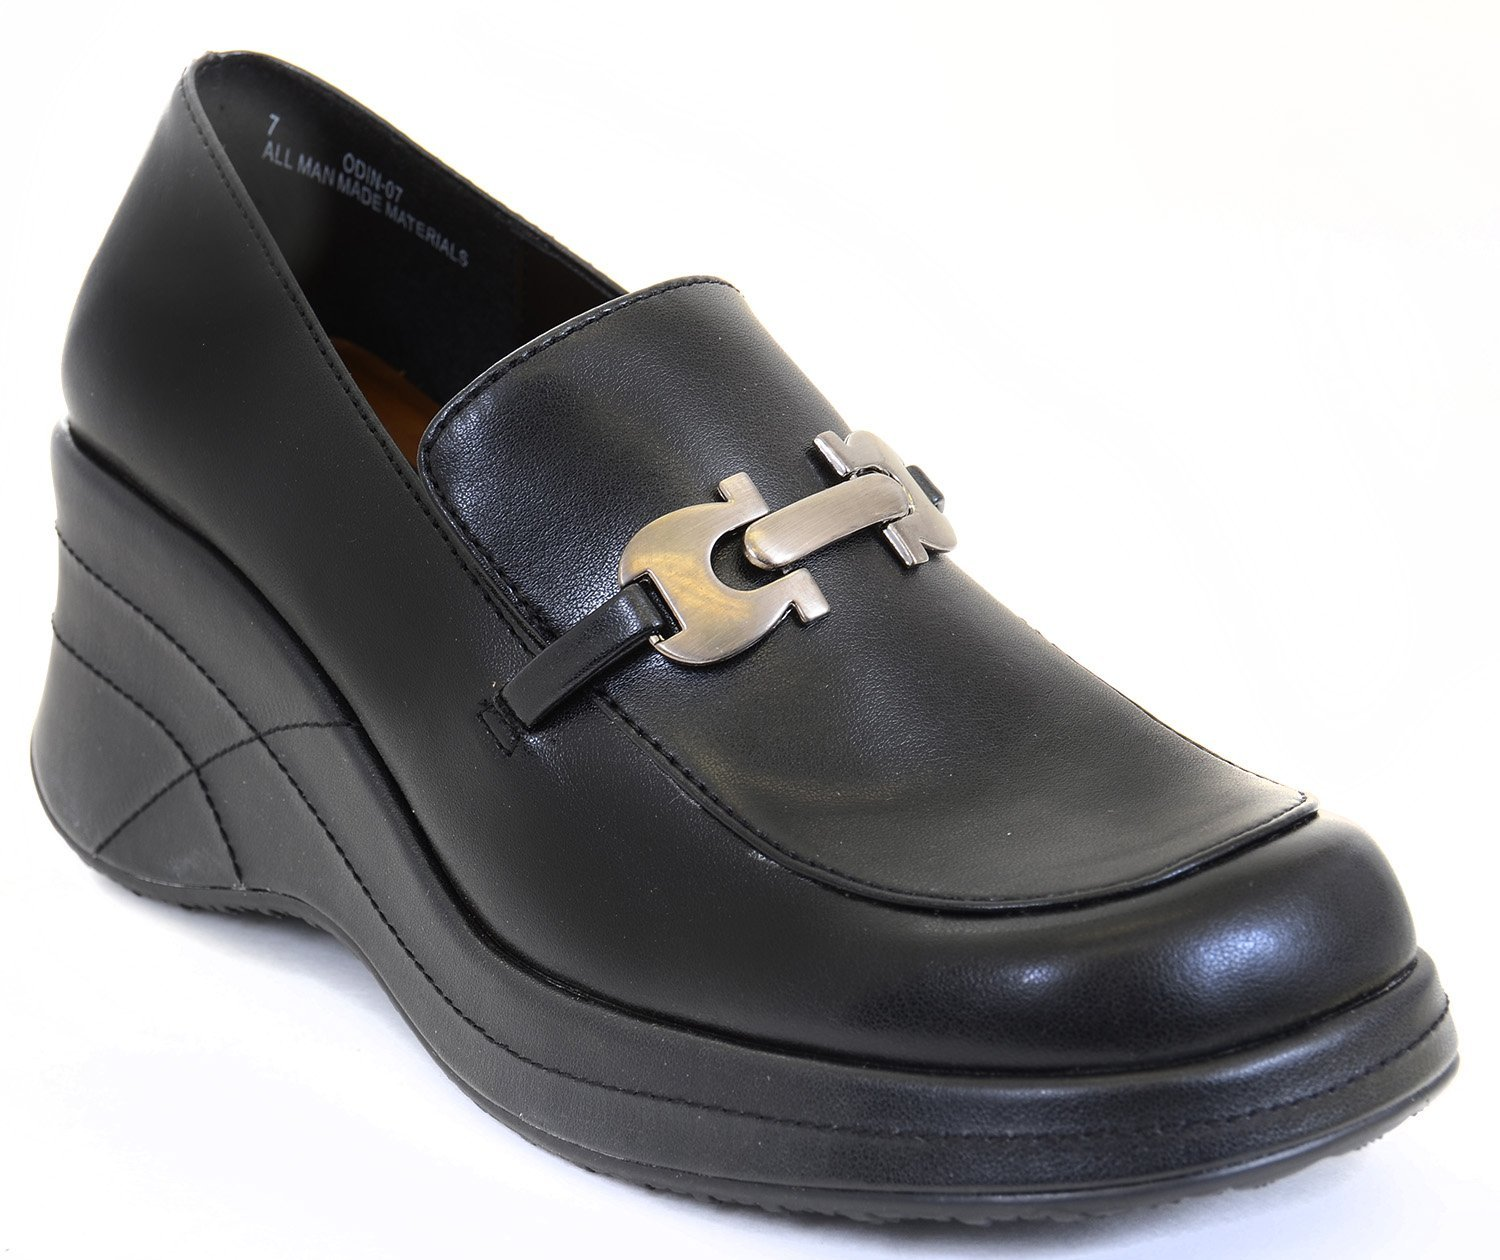 funky wedge chain black slip on loafer work shoes ebay